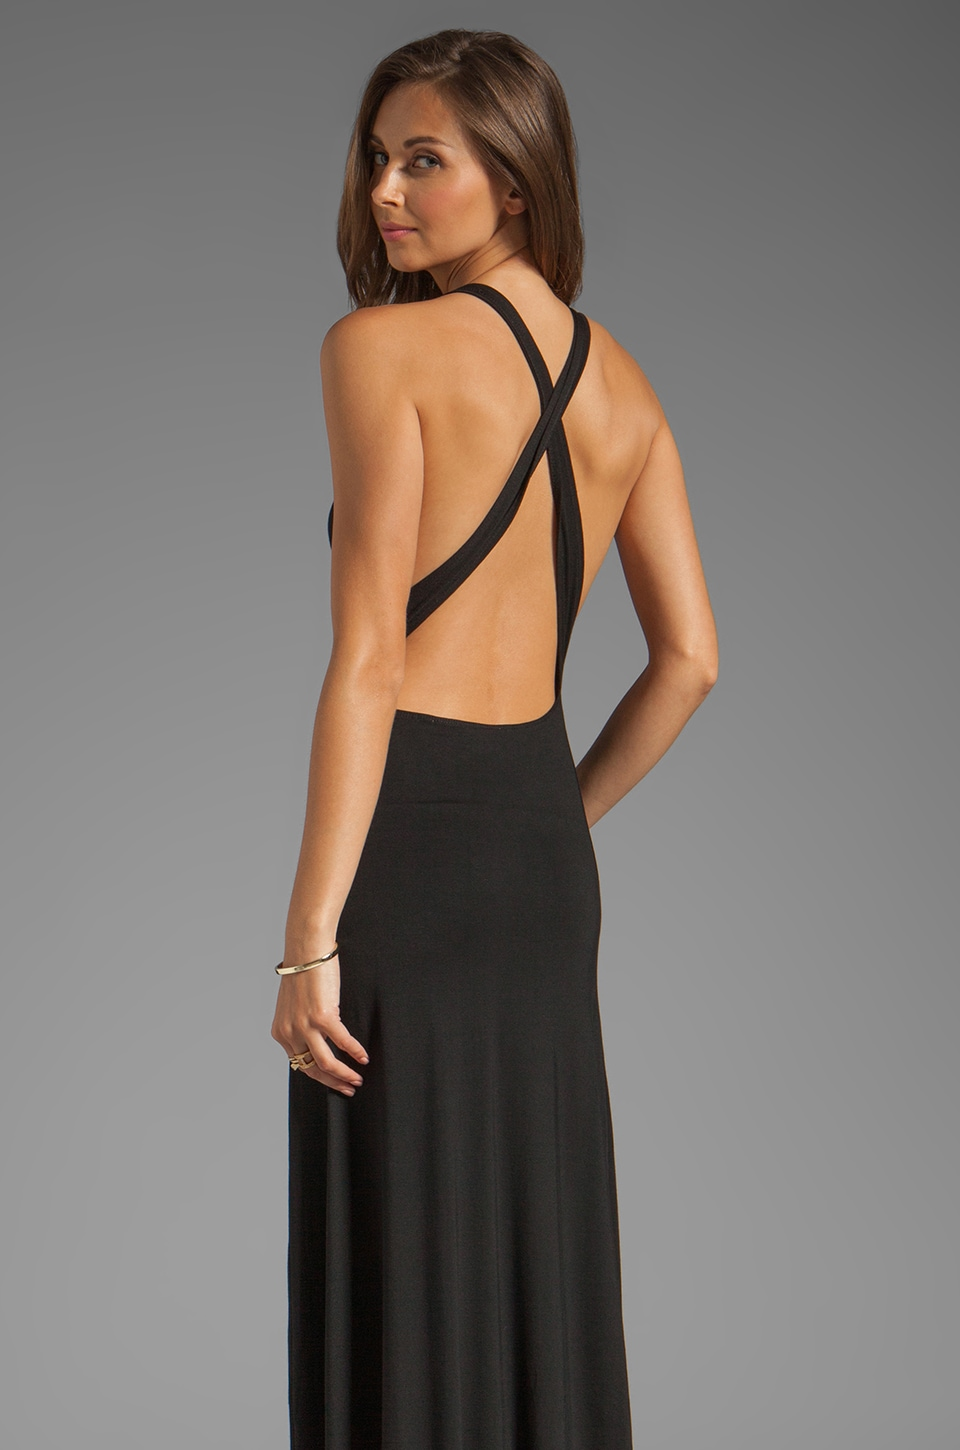 Lovers + Friends Feeling Fine Maxi Tank Dress in Black